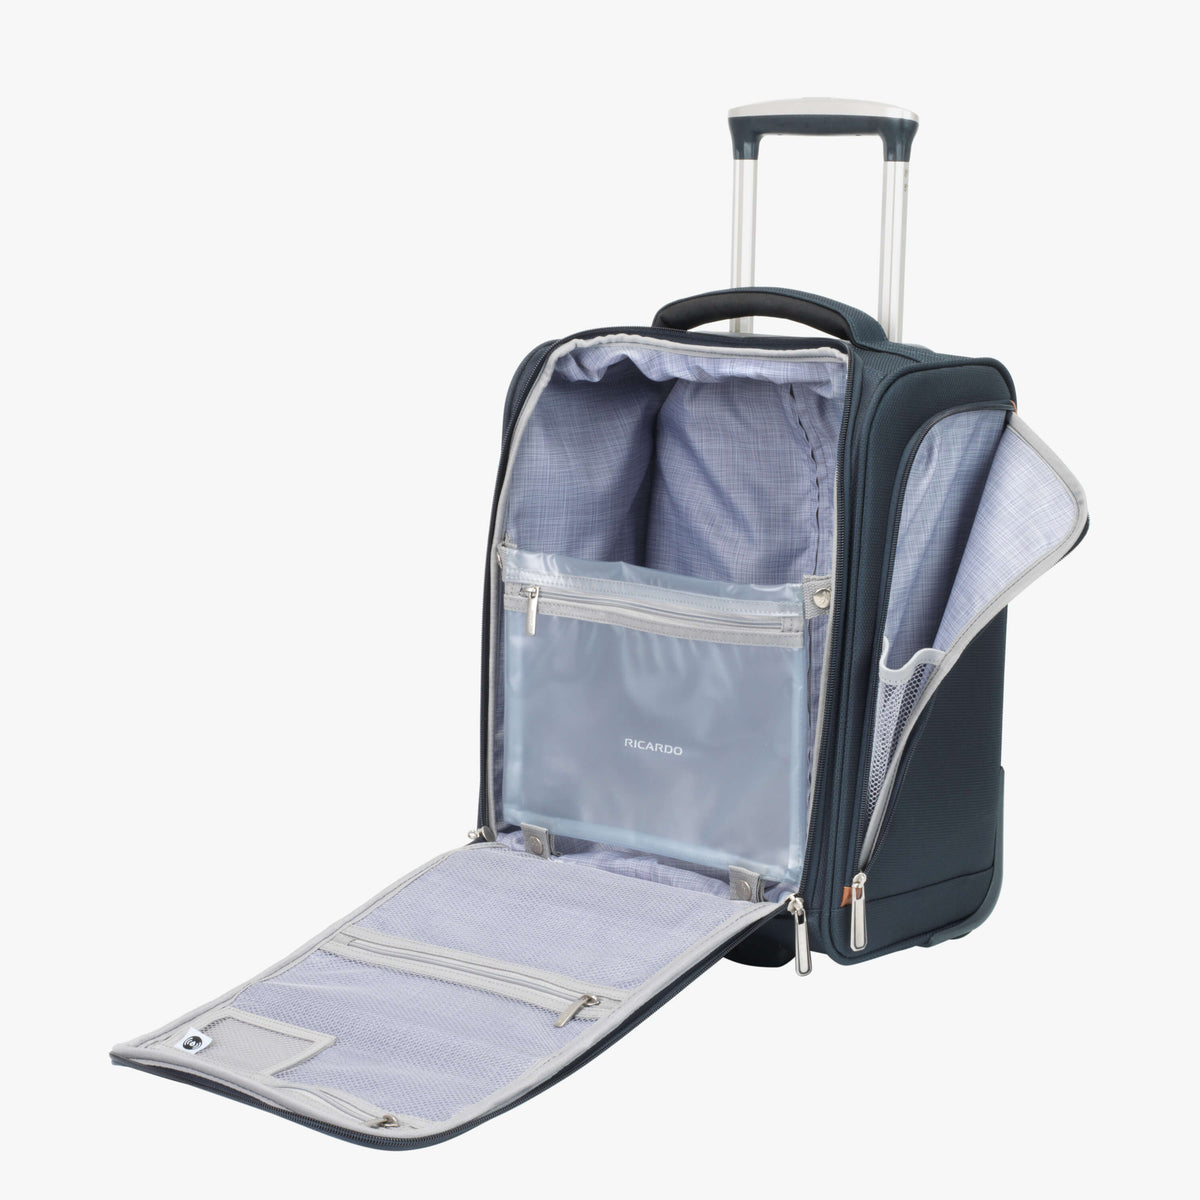 4b1a7b4fa314 Sausalito Compact Carry on Luggage with Wheels – Ricardo Beverly Hills